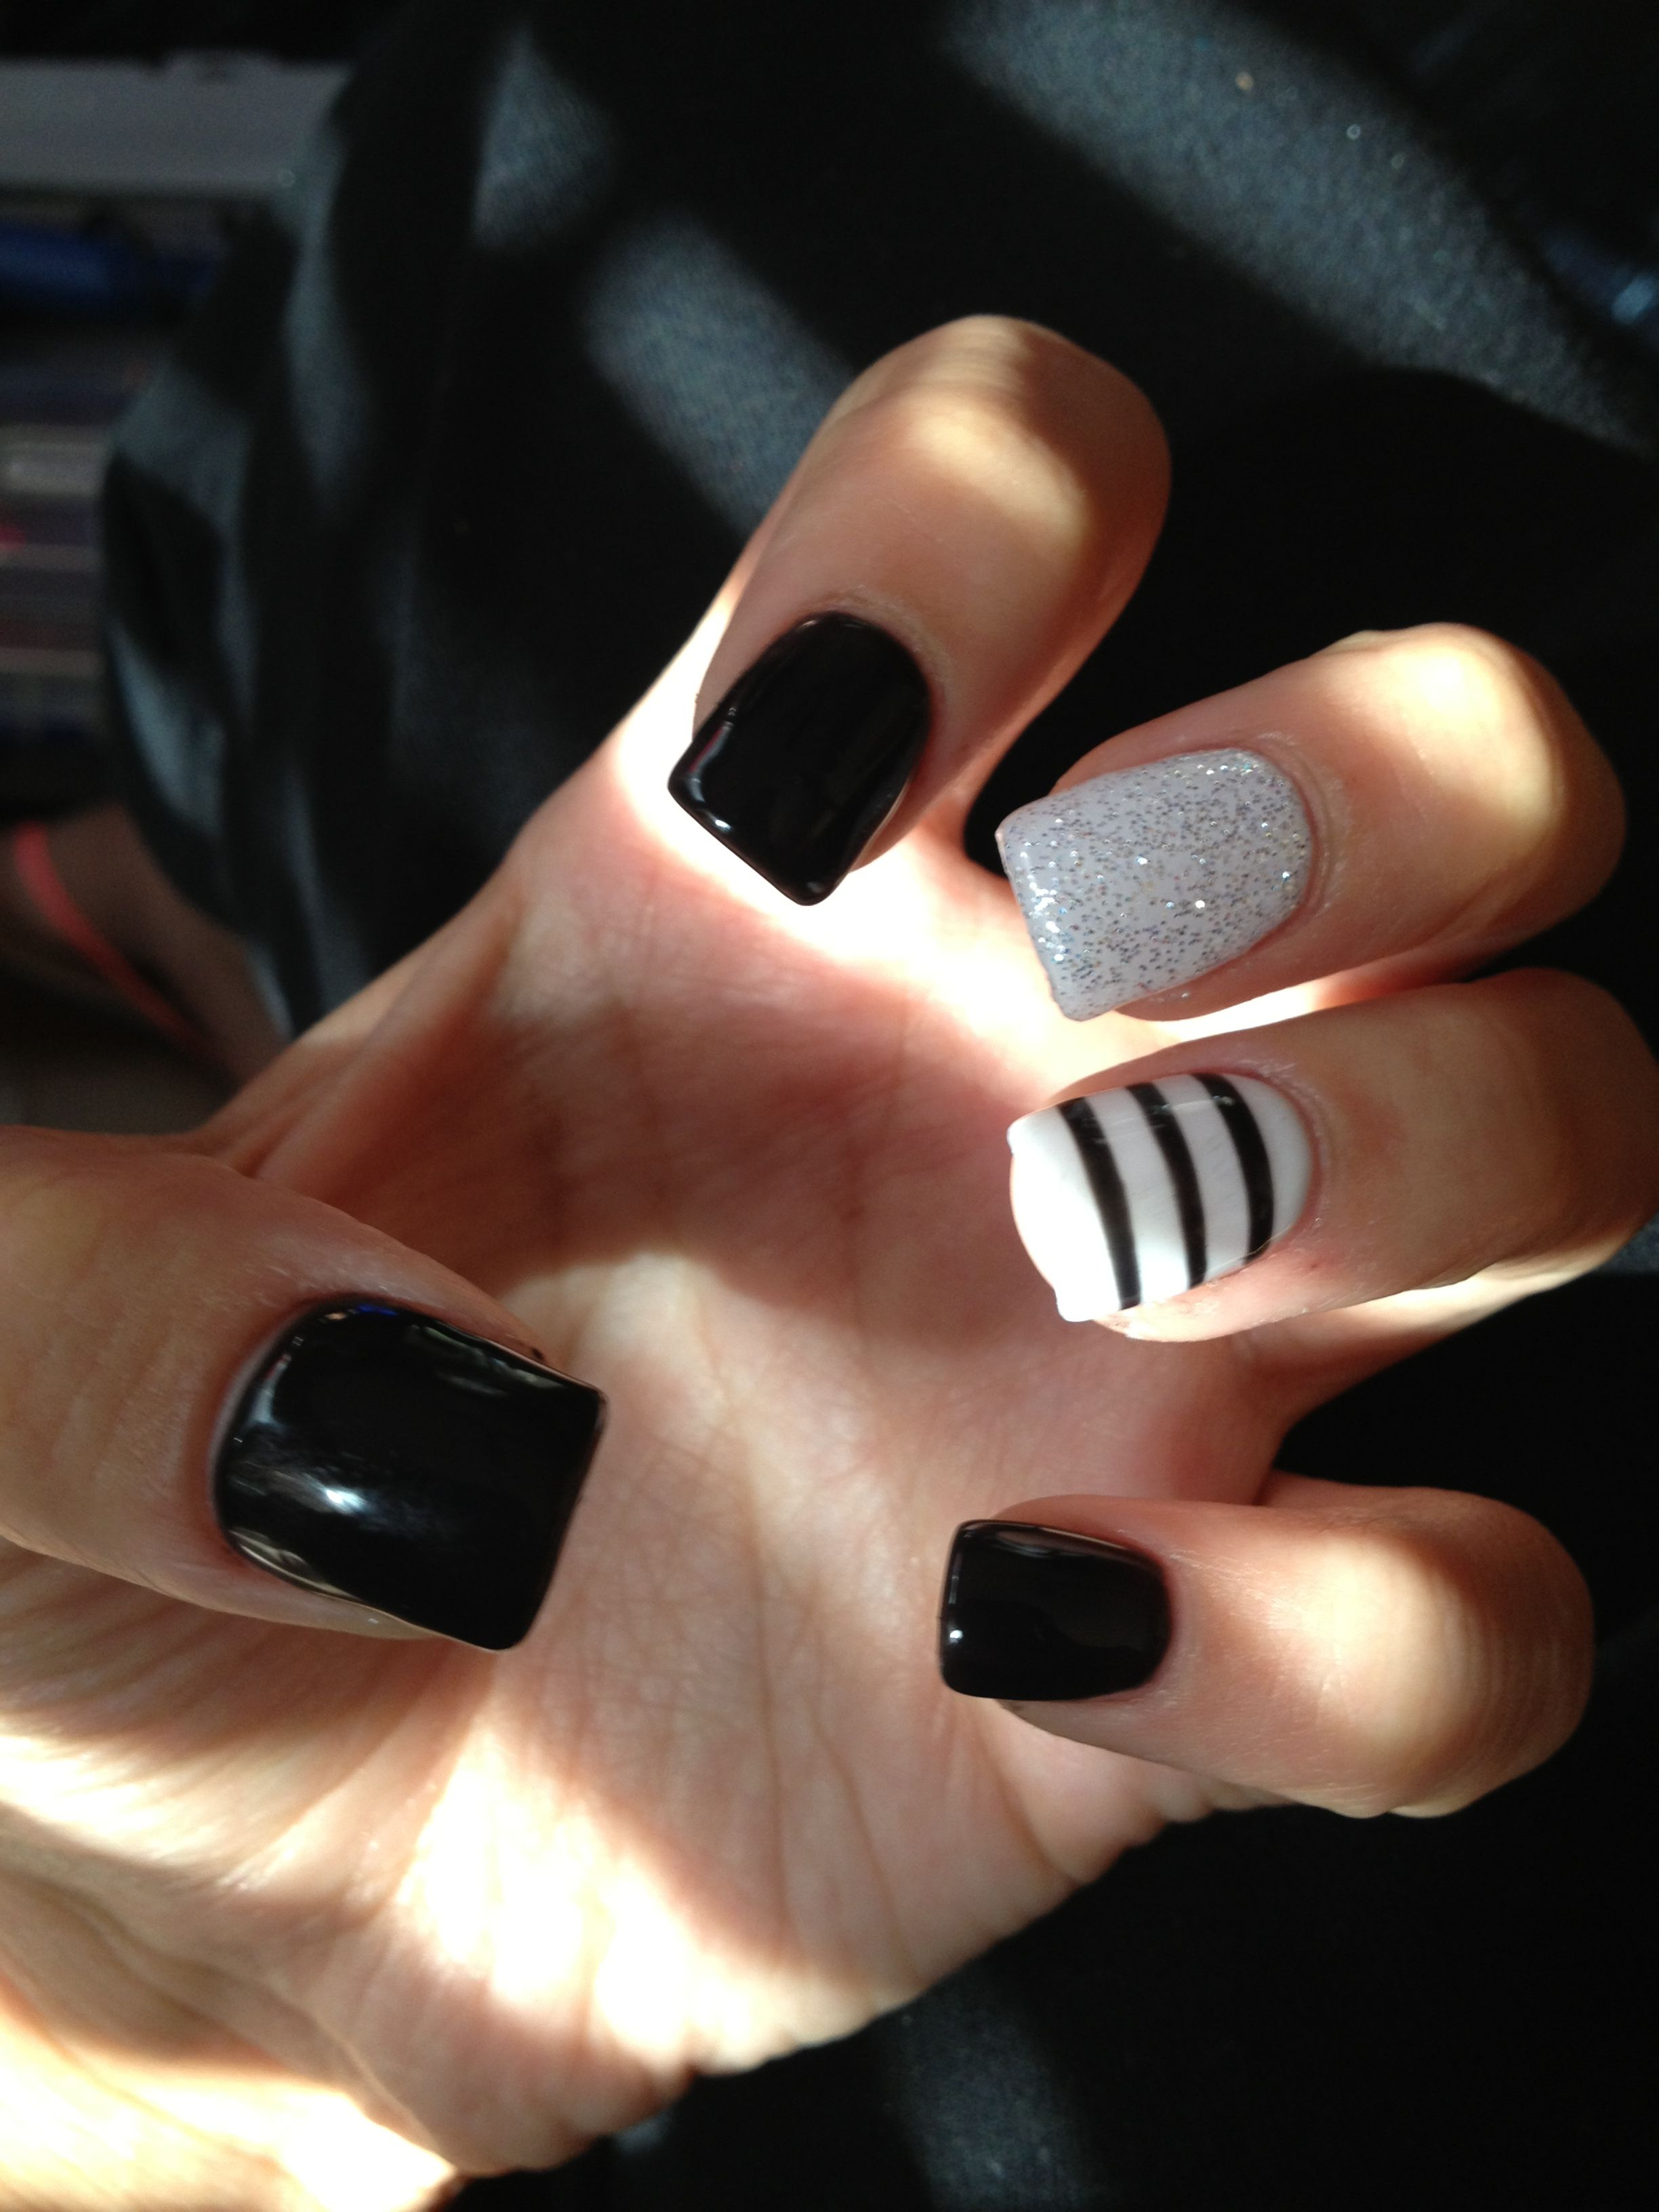 Black And White Nails With Glitter And Stripes Socutex White Glitter Nails Simple Nails Nail Polish Ideas Easy